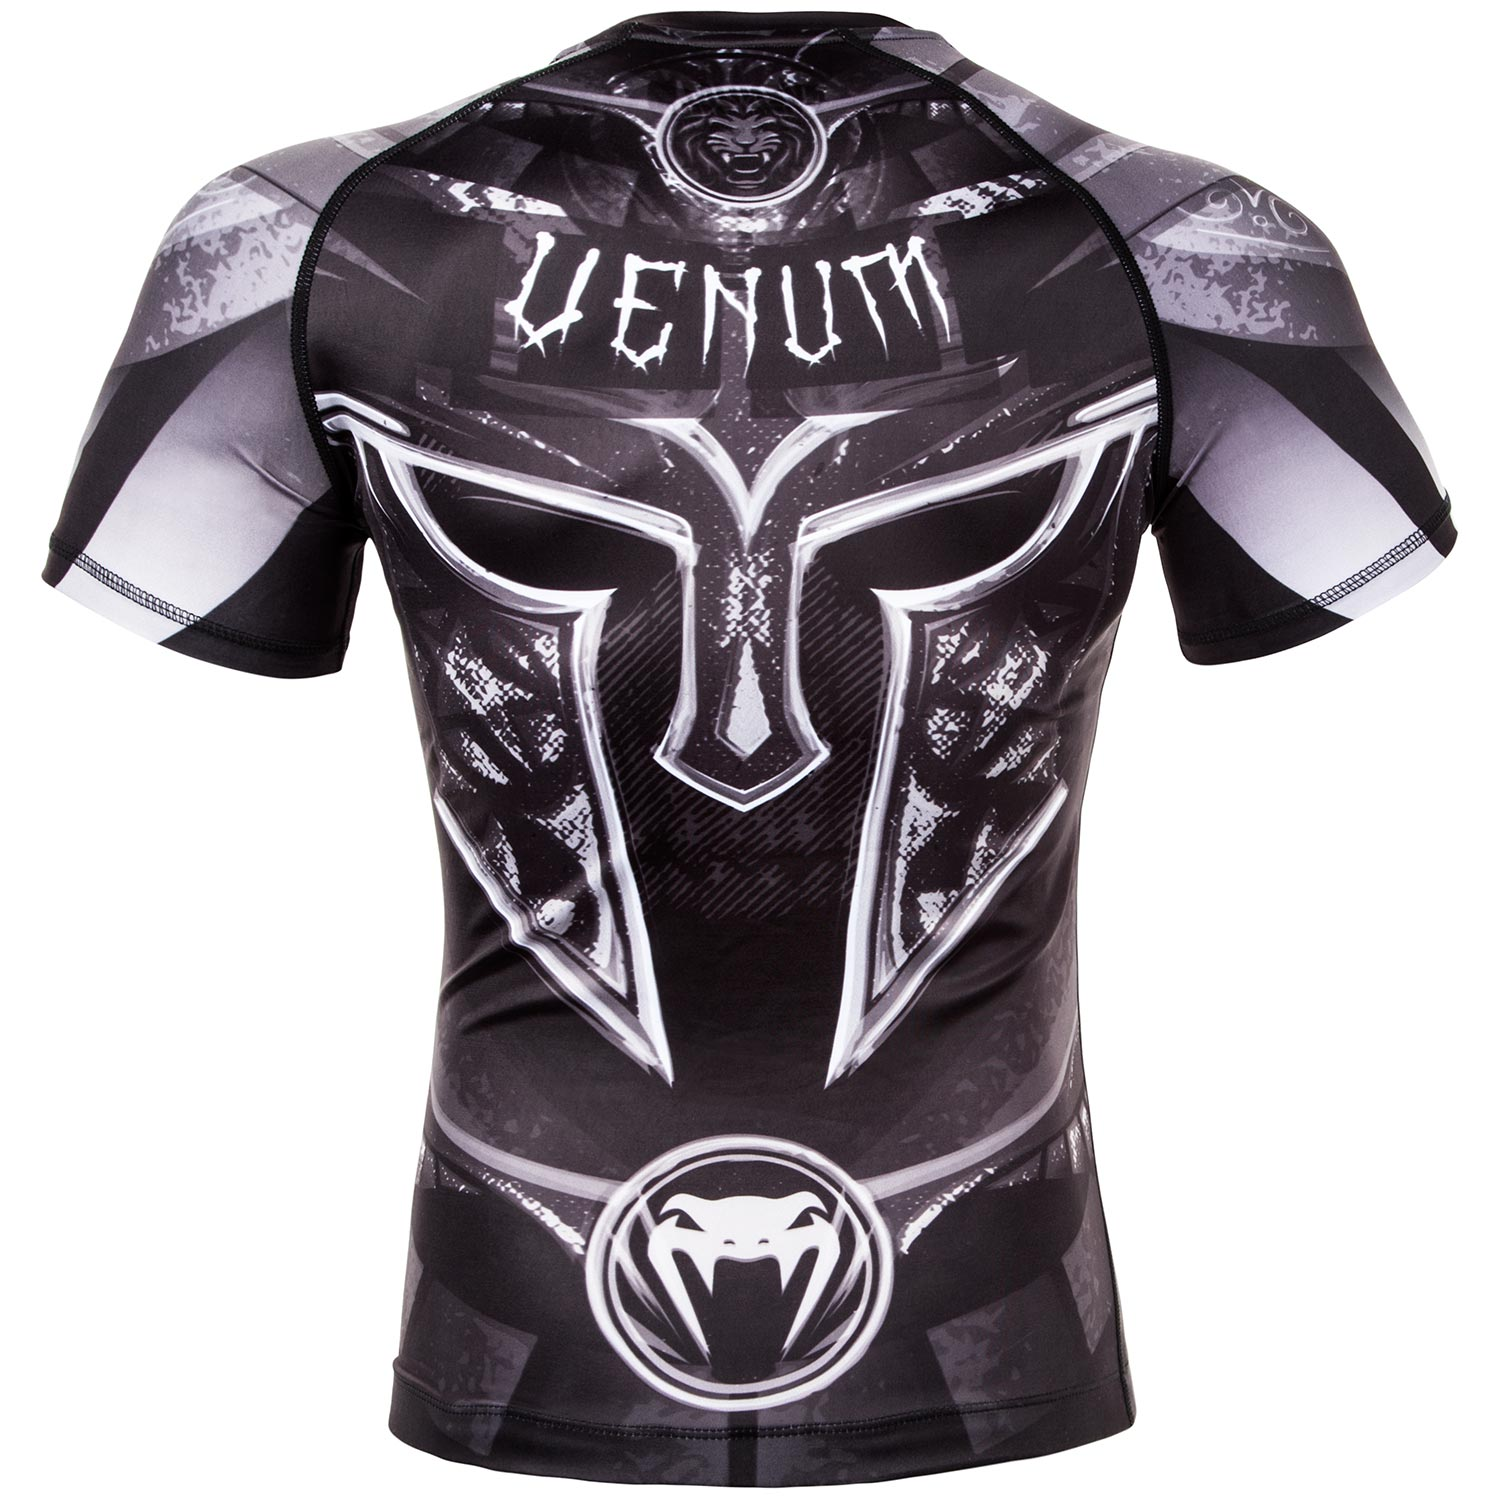 Venum Gladiator Short Sleeve Rashguard Black//White